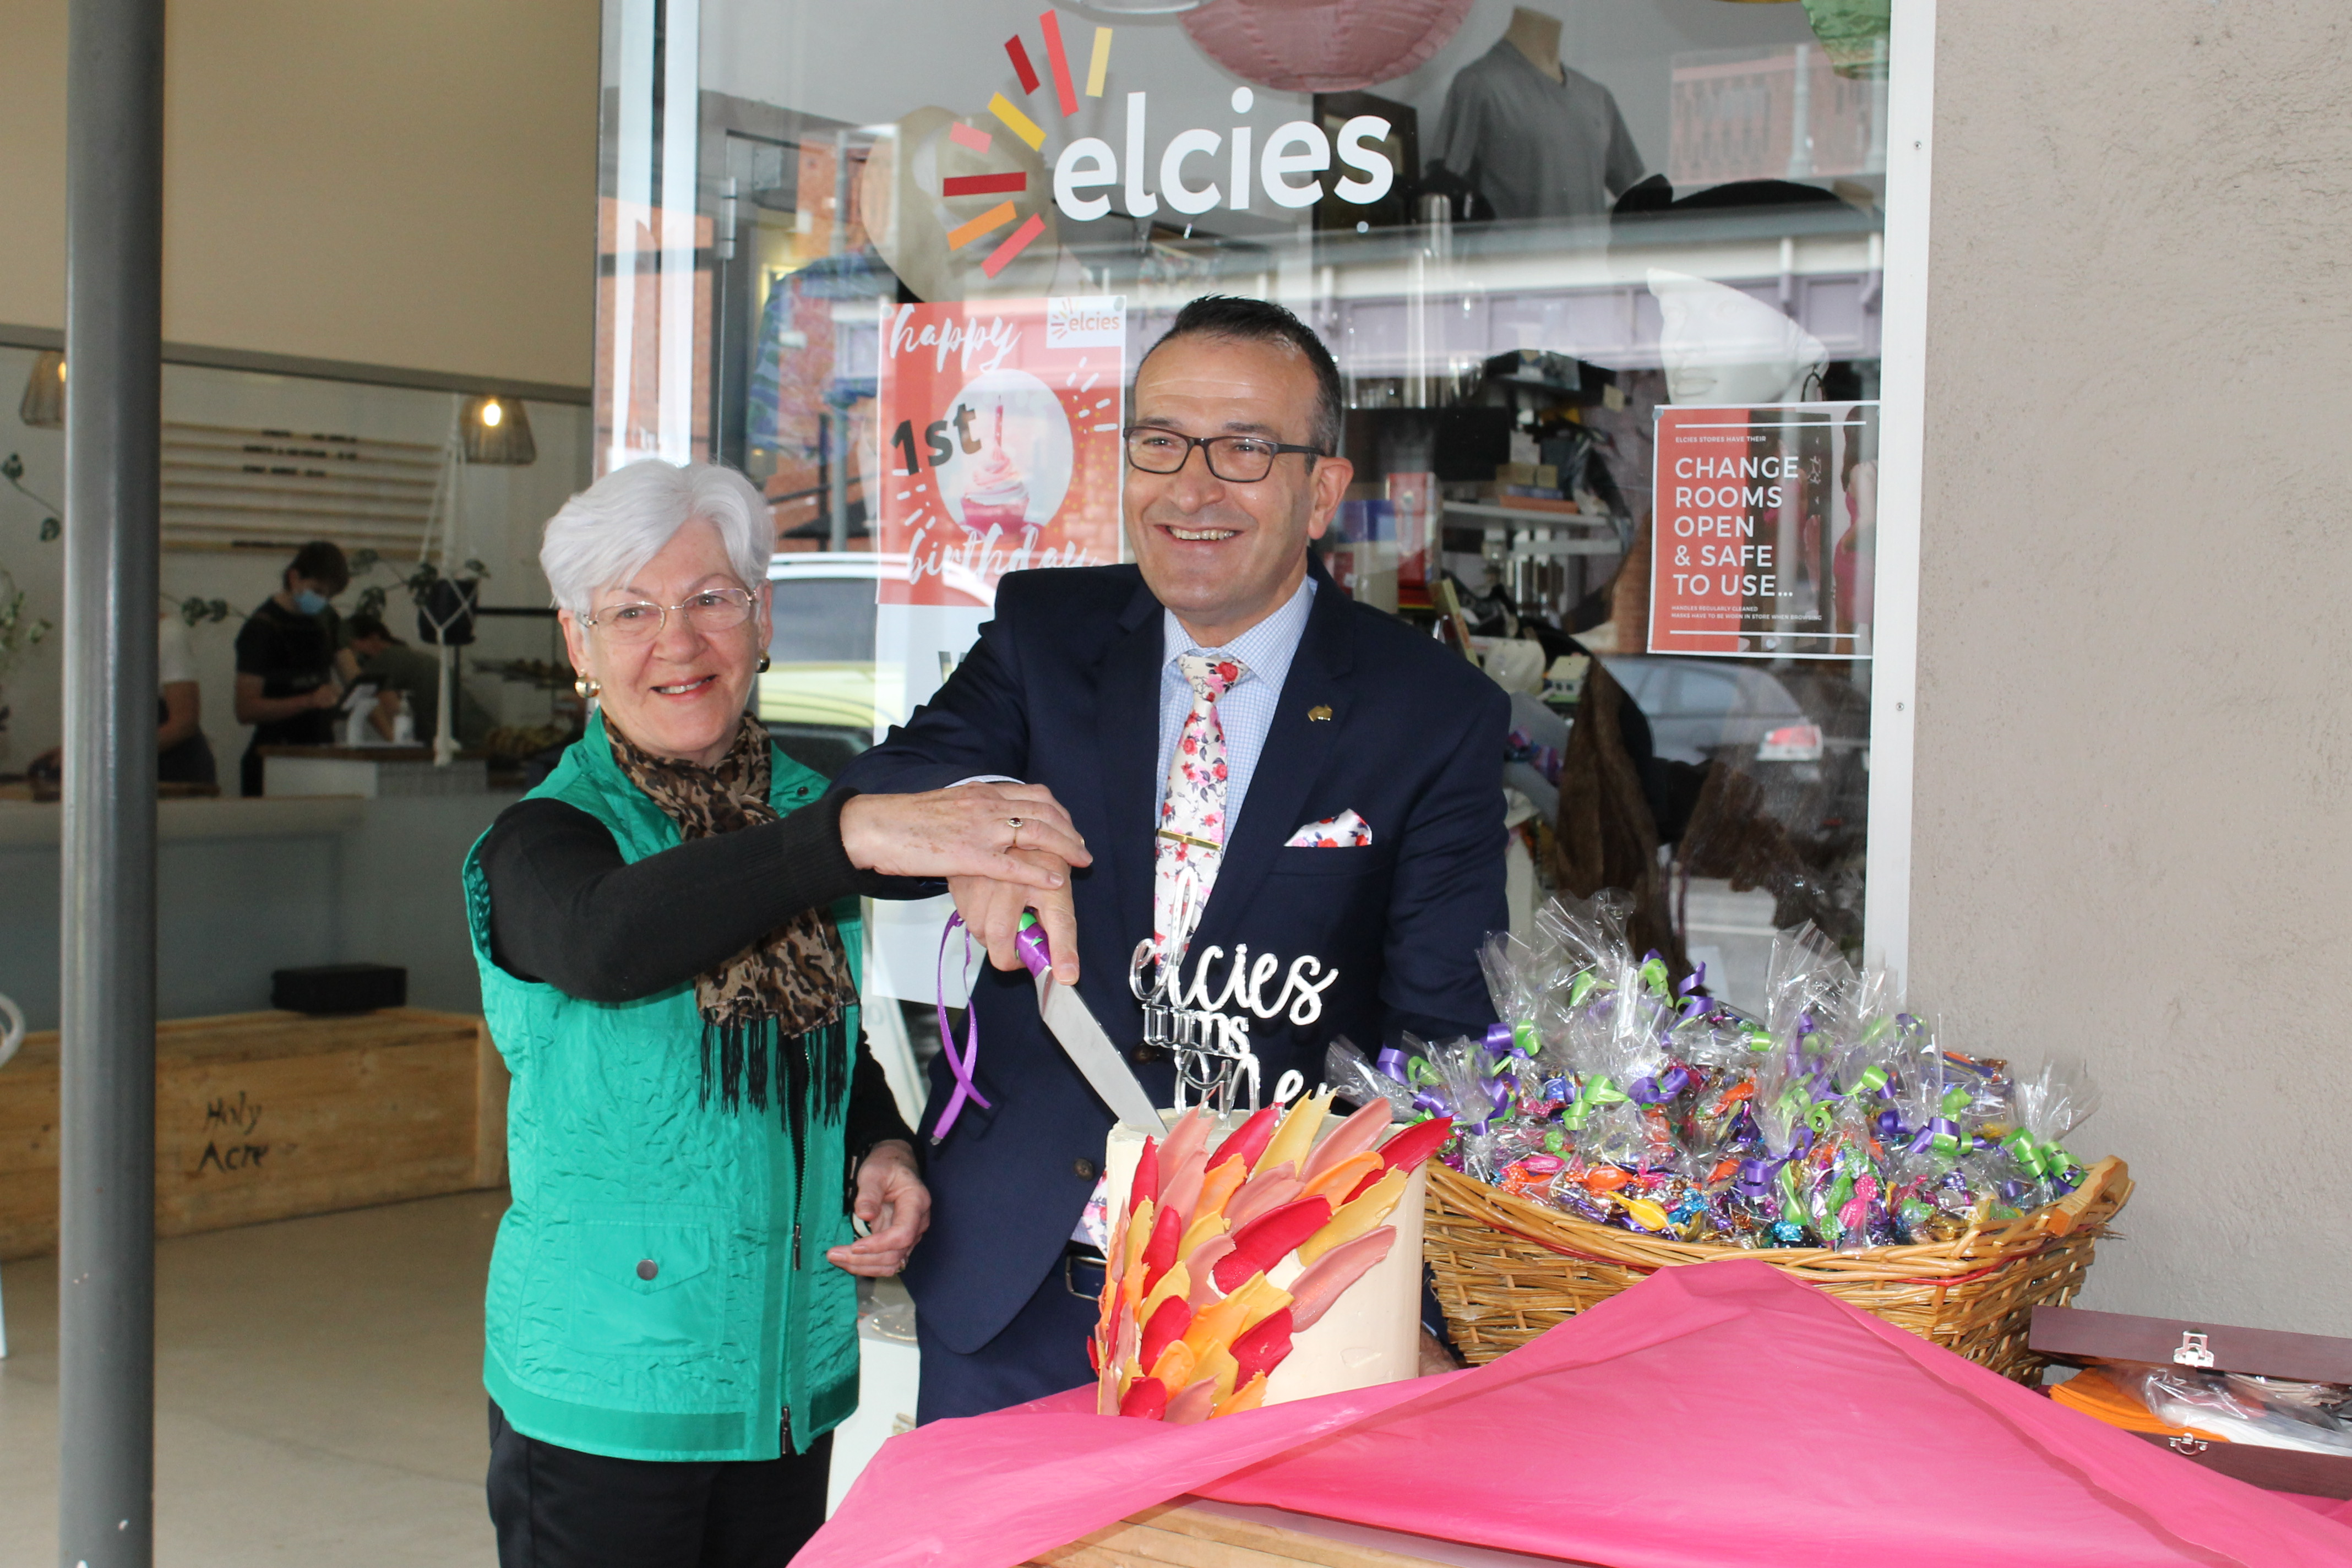 Tony Piccolo and Carol Poel cutting the cake to celebrate Elcies first birthday